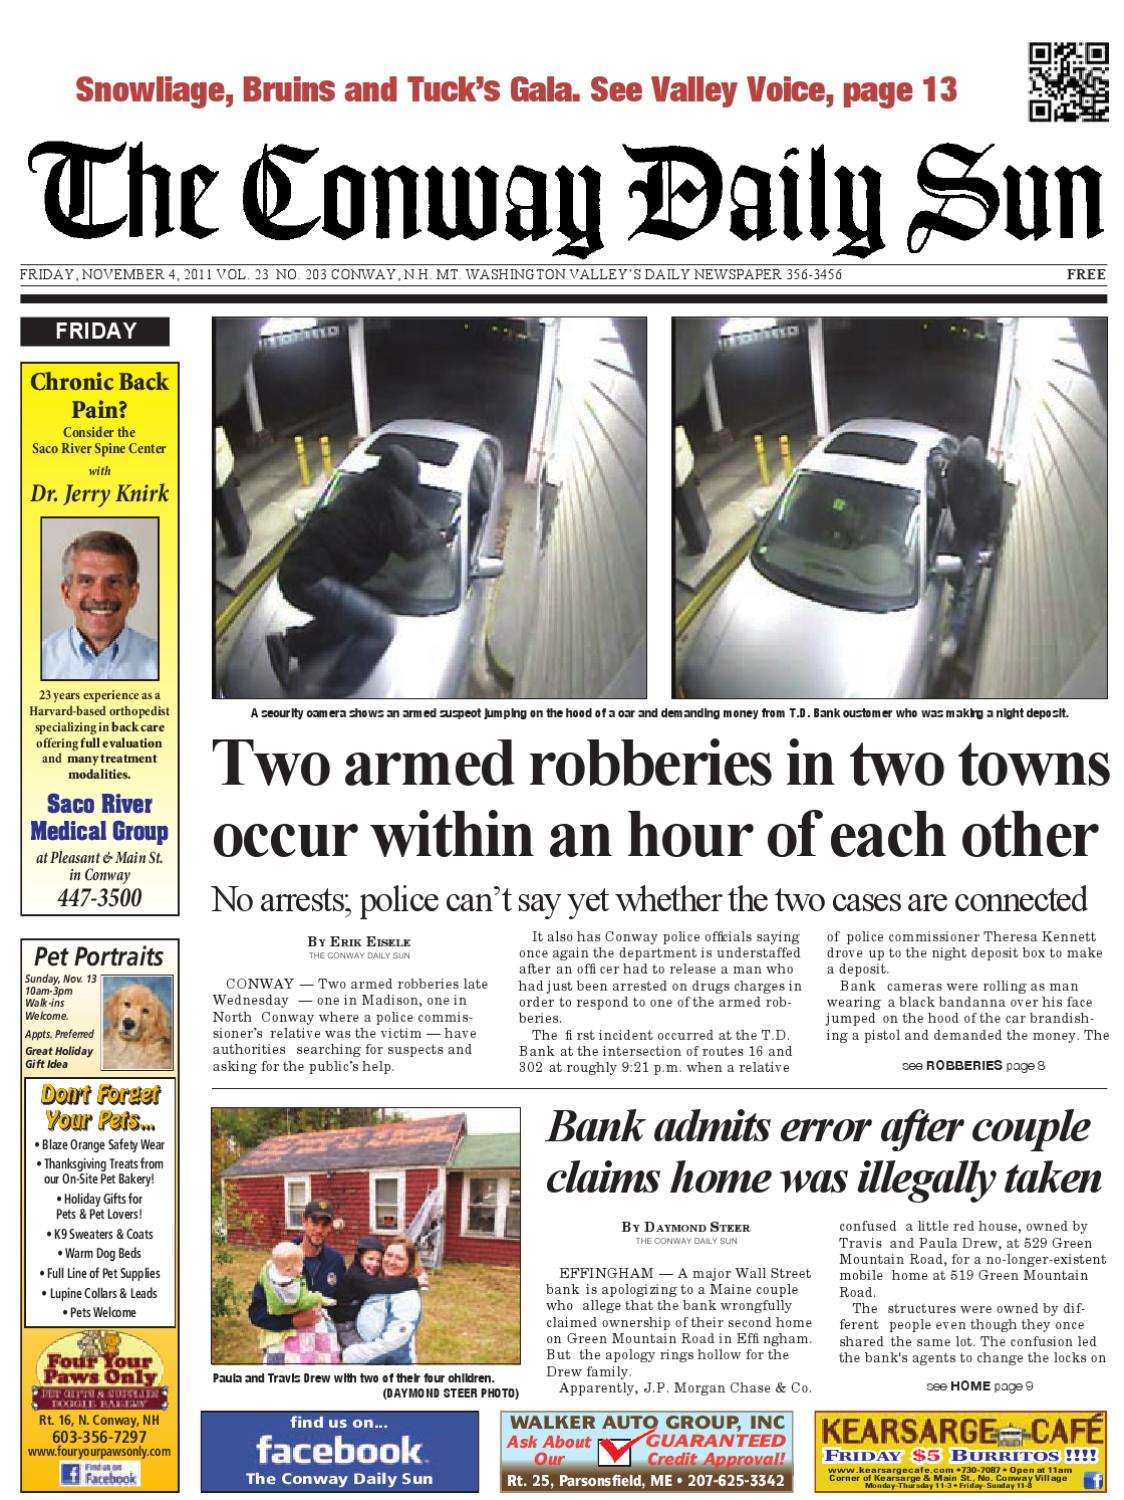 The Conway Daily Sun, Friday, November 4, 2011 by Daily Sun